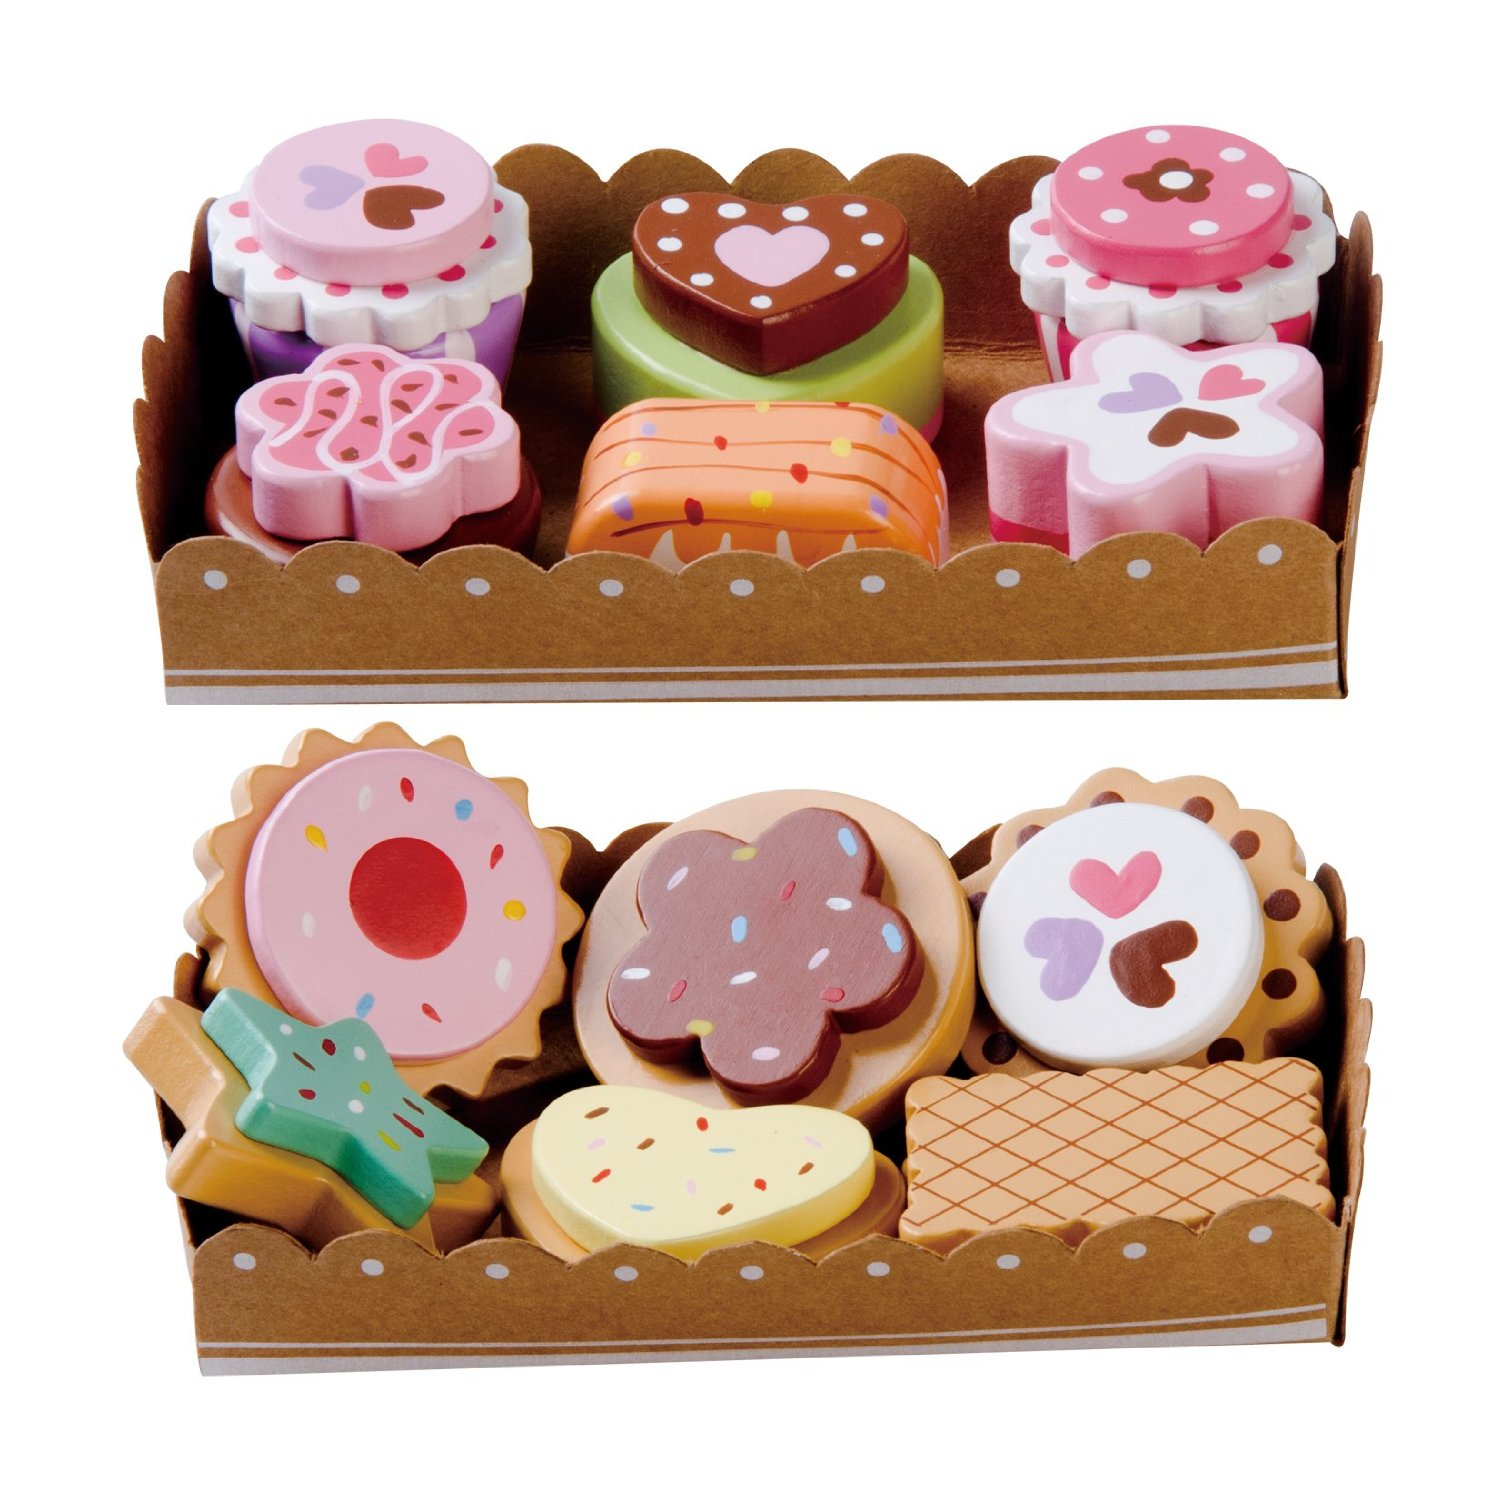 Wooden Cakes and Biscuits from BeeSmart   MALLORIE OWENS